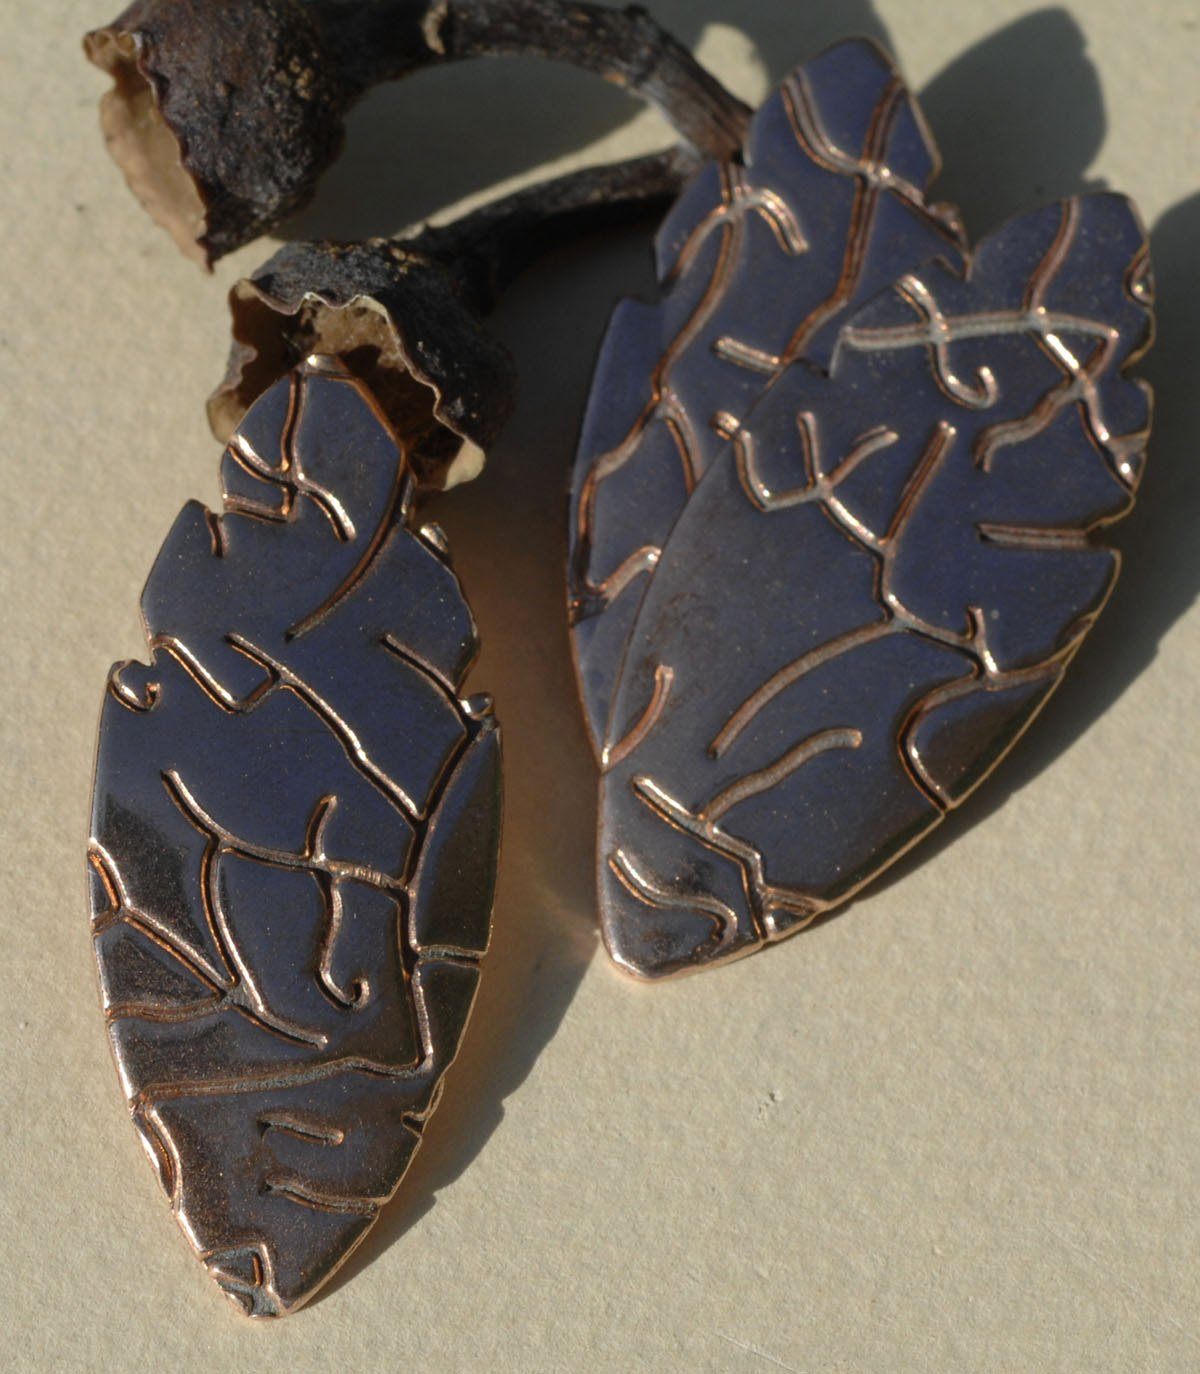 Large Leaf Blank 47mm x 20mm Cutout Shape - Enameling Stamping Texturing Blanks - Variety of Metal